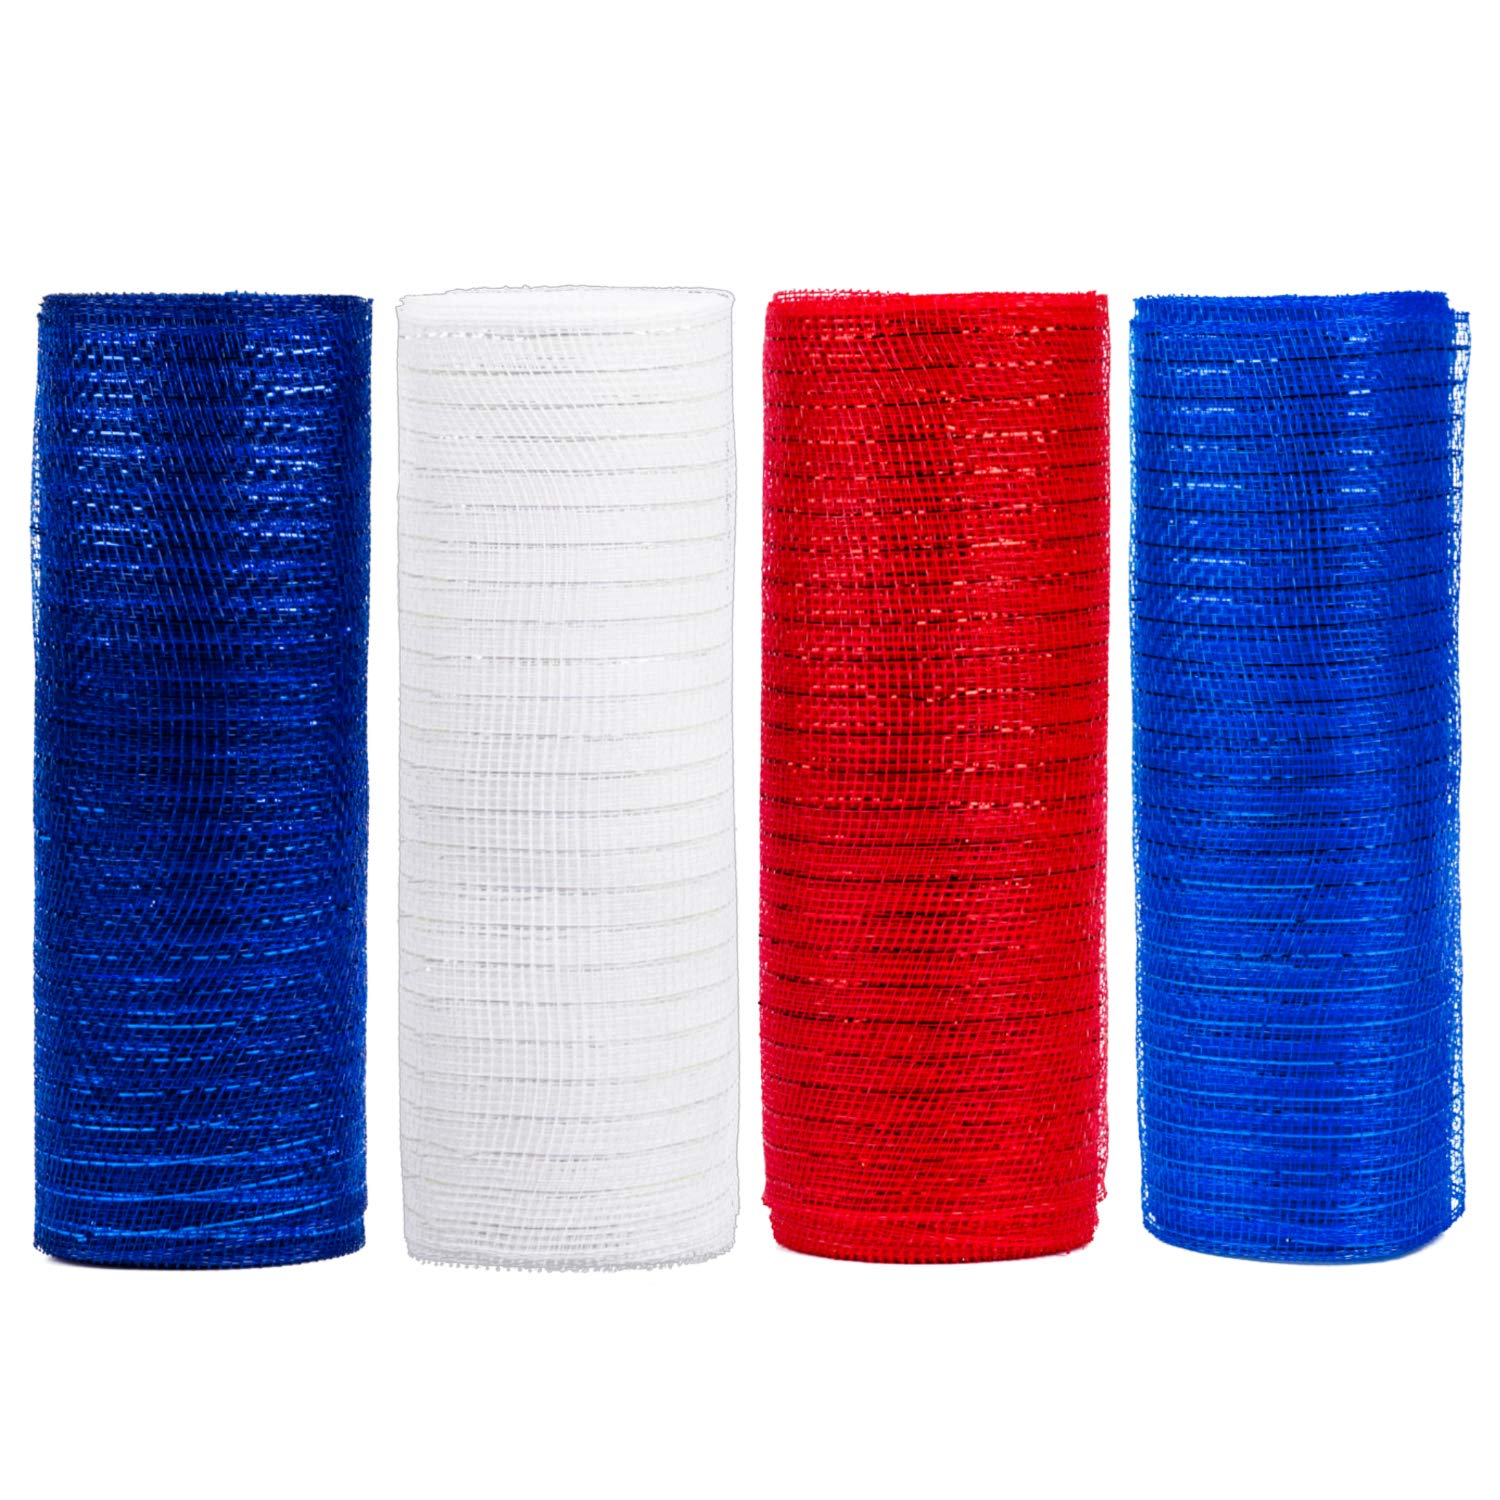 LaRibbons Deco Poly Mesh Ribbon - 10 inch x 30 feet Each Roll - Metallic Foil Red/Royal/White/Navy Set for Wreaths, Swags and Decorating - 4 Pack by LaRibbons (Image #2)